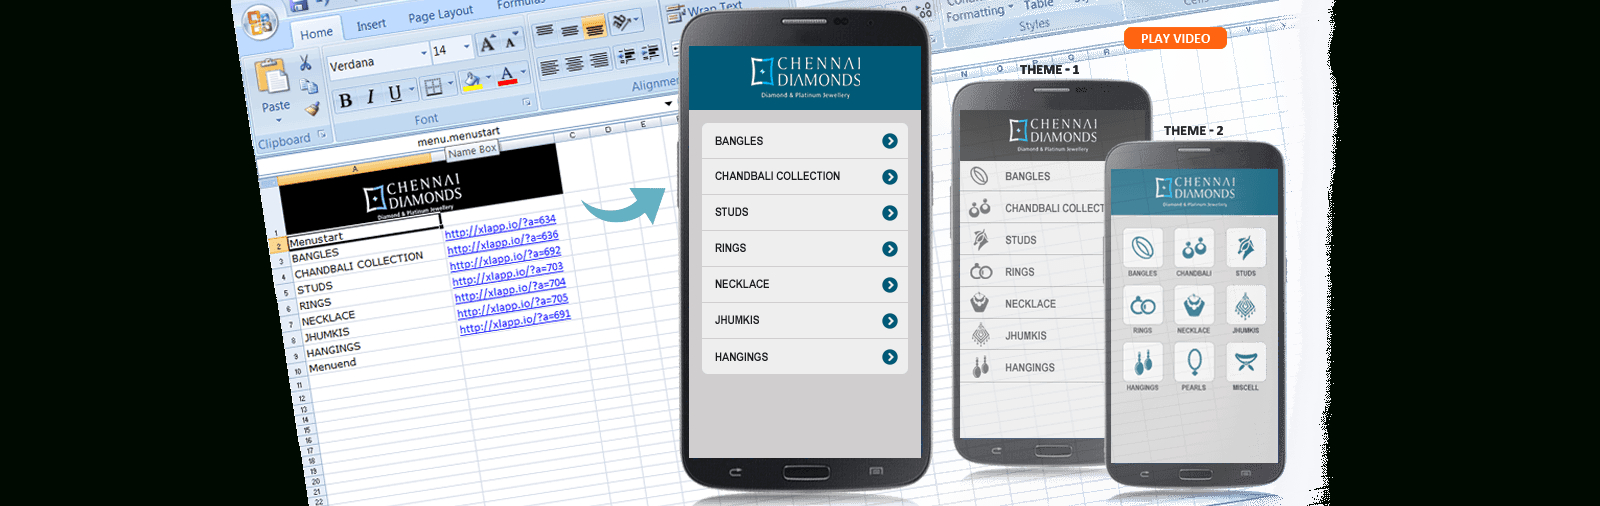 How To Create An App From Excel Spreadsheet With Convert Excel To Android App  Xlapp